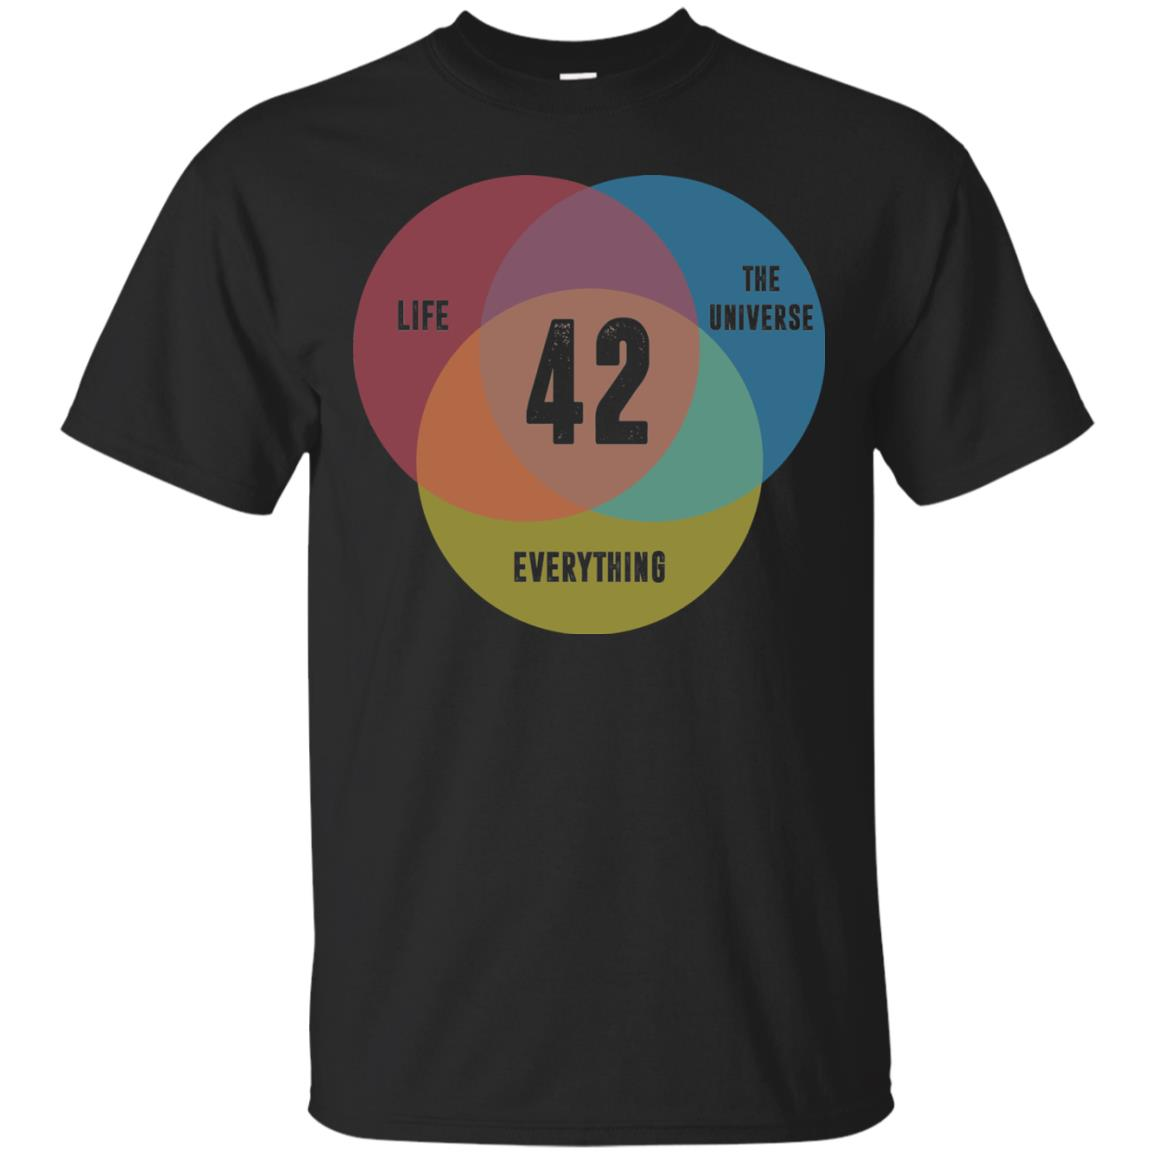 image 469 venn diagram 42 life, the universe & everything t shirt shirt diagram at n-0.co